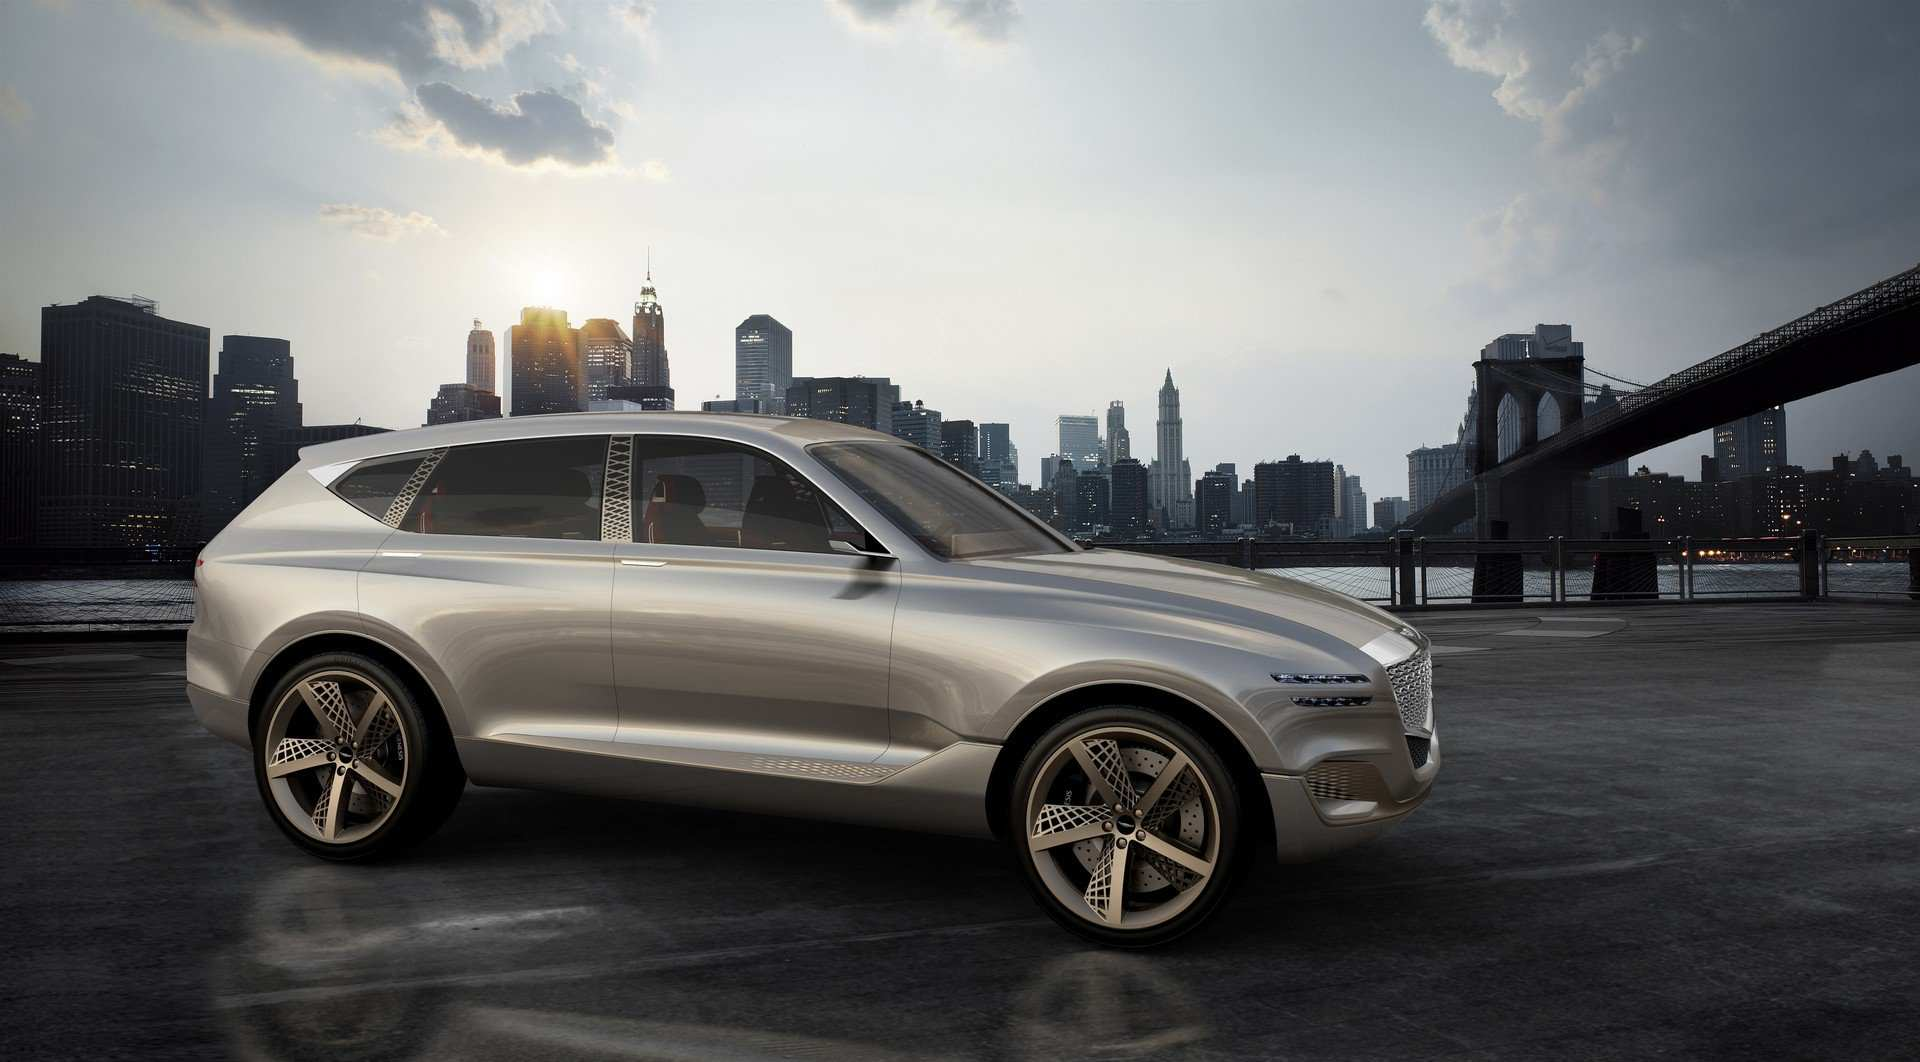 42 All New 2020 Hyundai Genesis Suv Picture